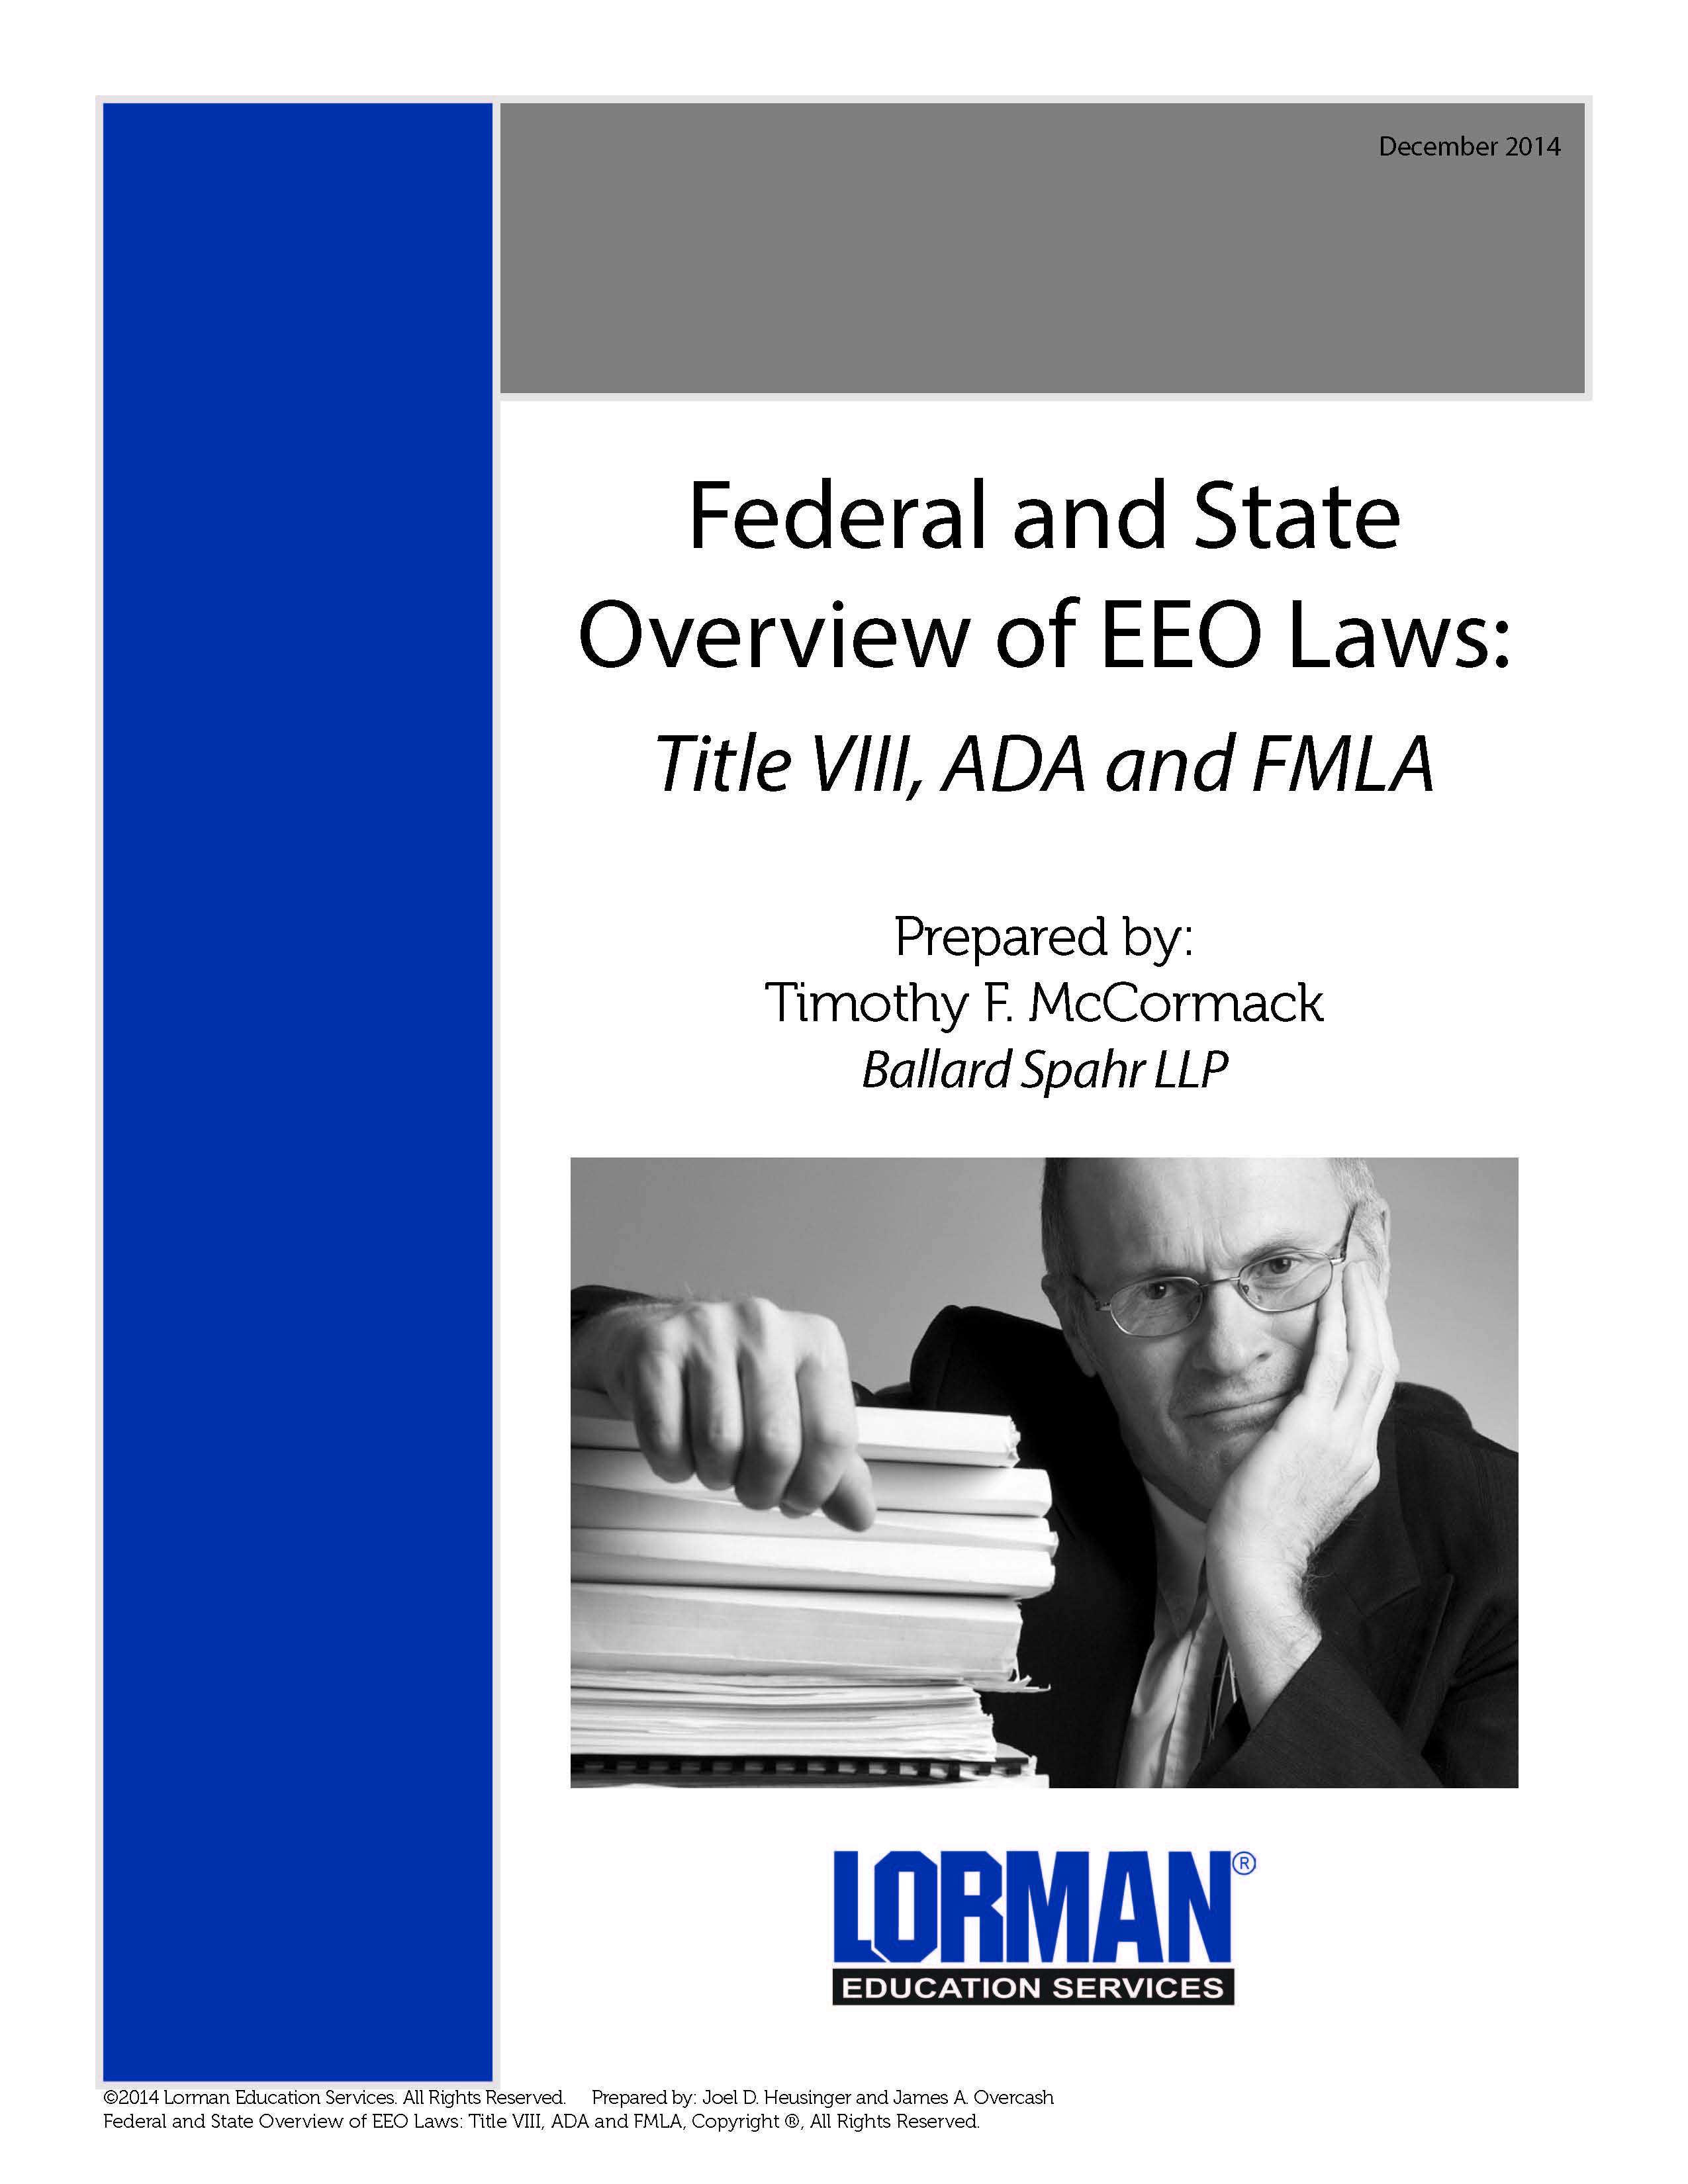 Federal and State Overview of EEO Laws: Title VIII, ADA and FMLA